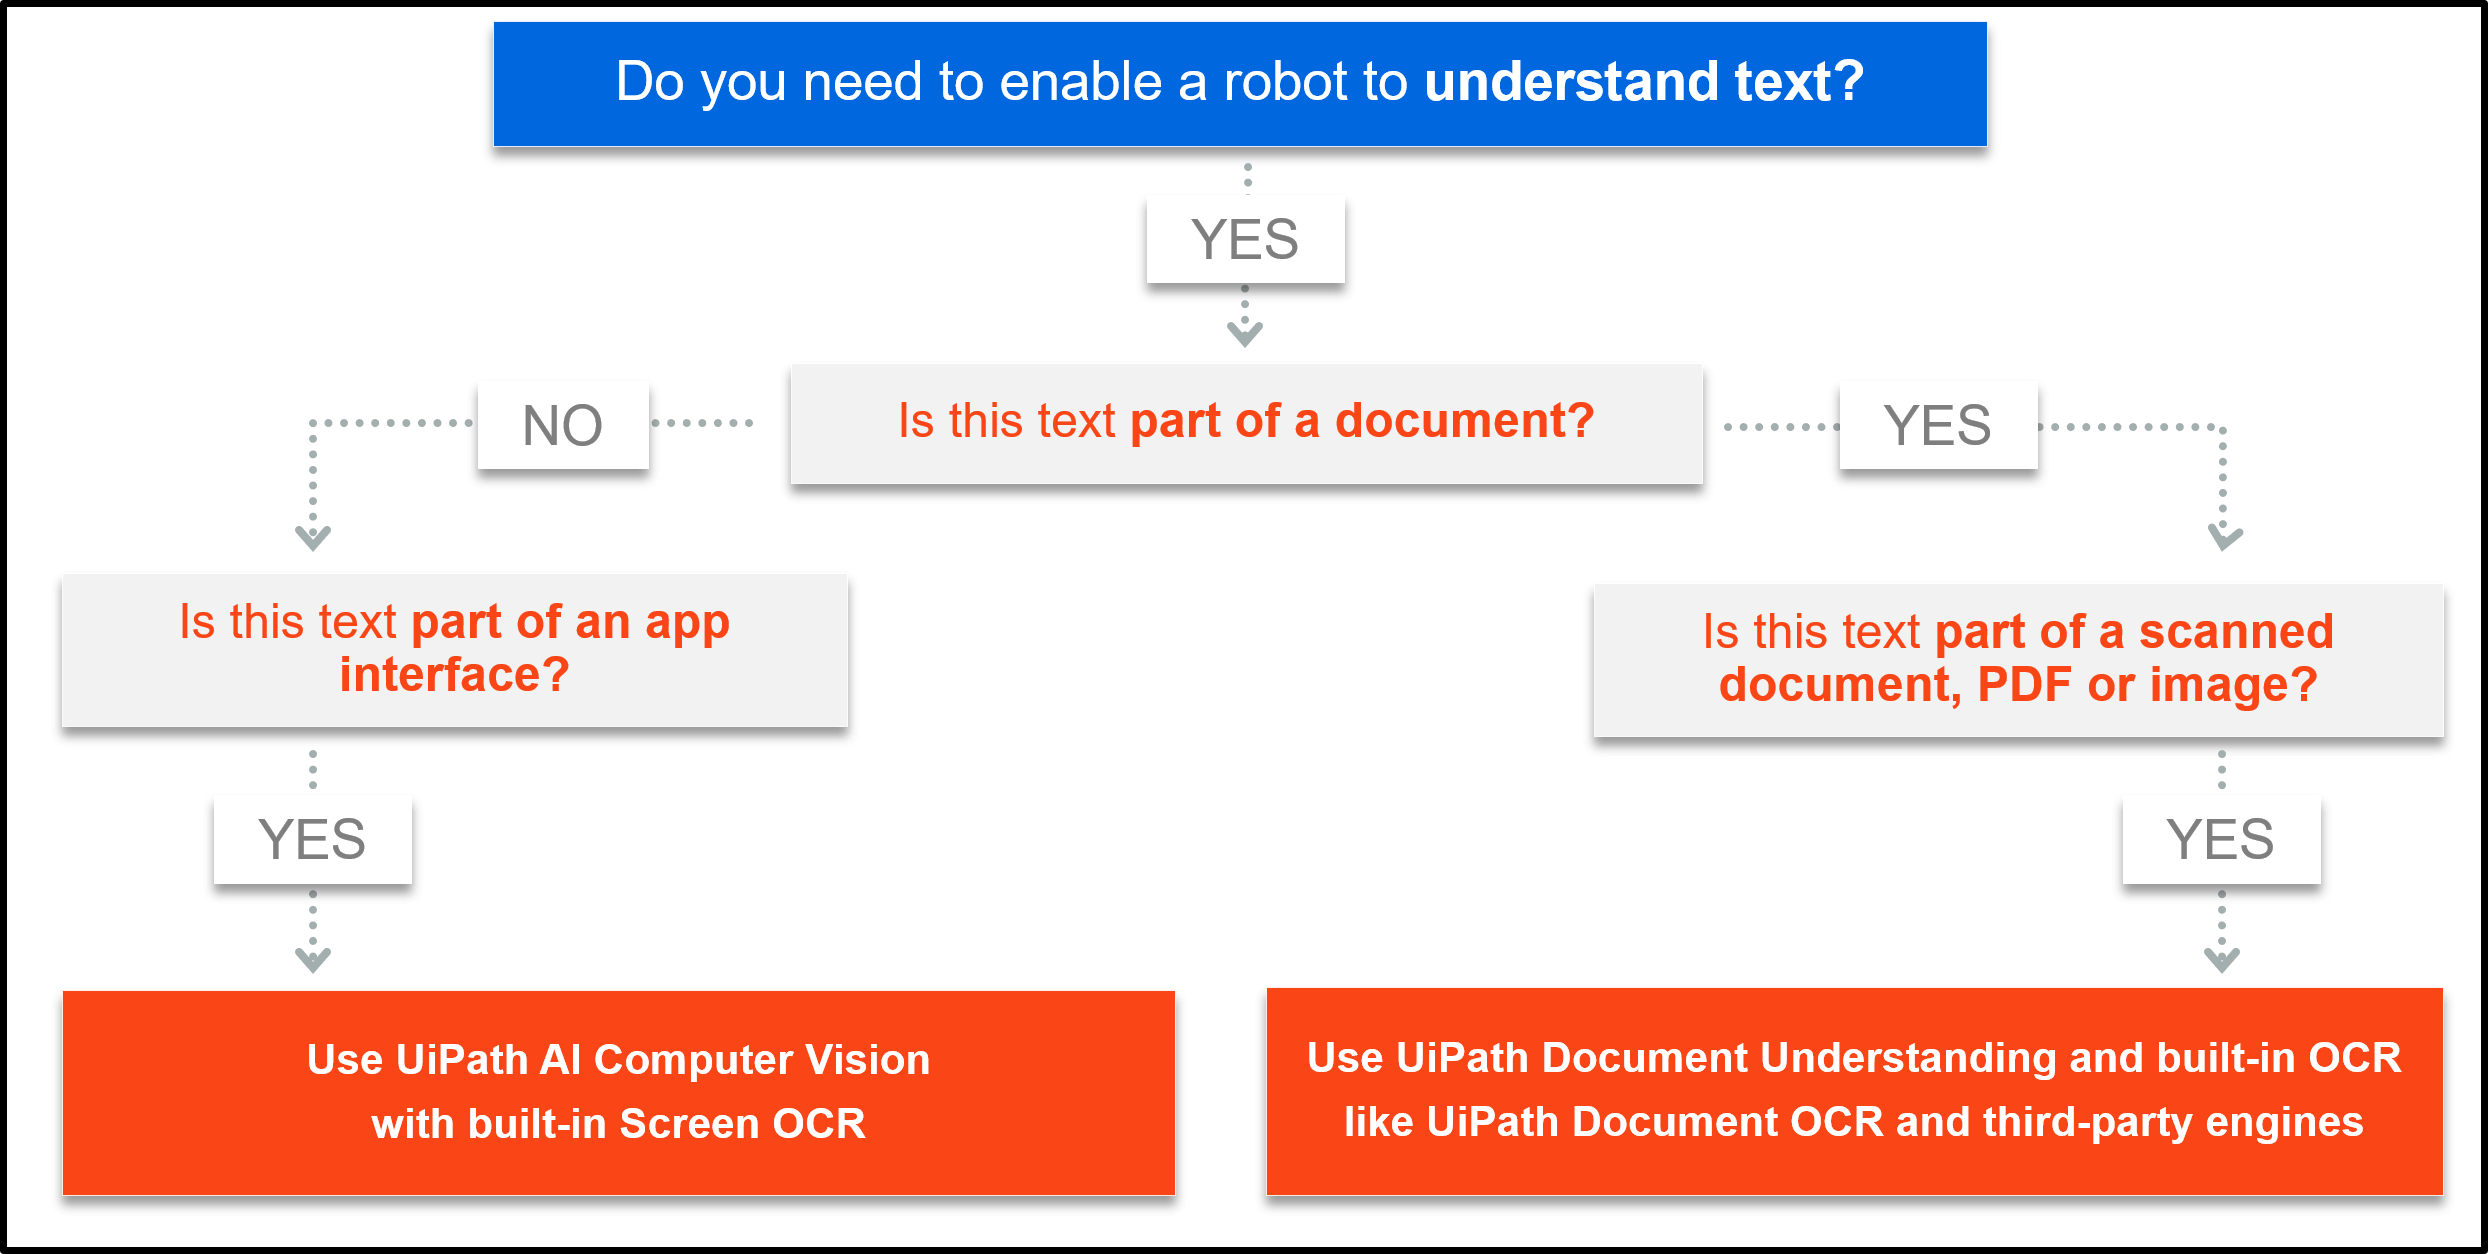 enable robot understand text ocr